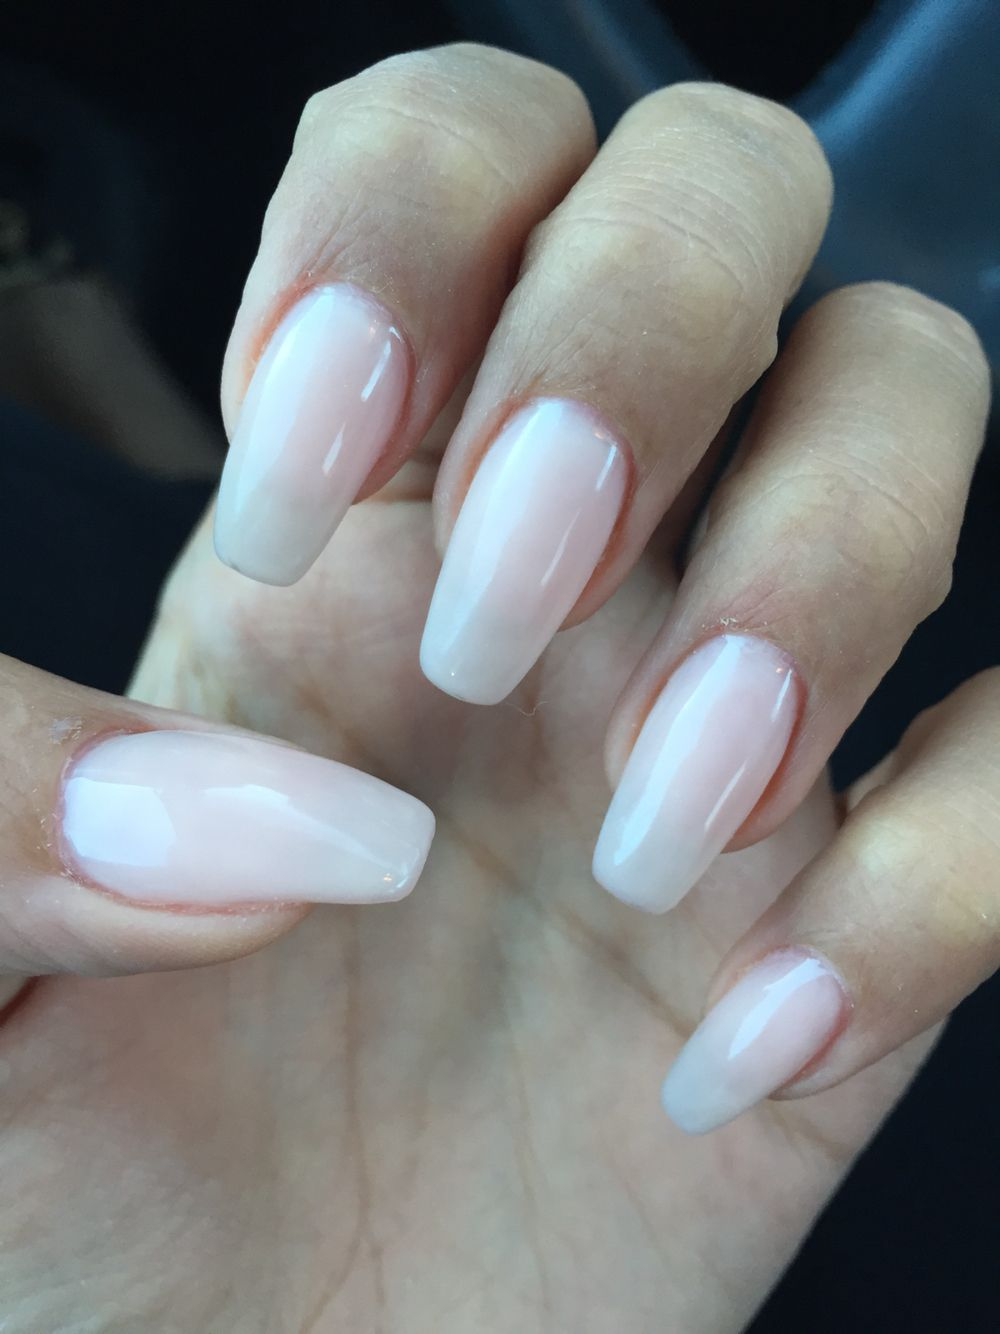 Square clear nails gel almond   Nails   Pinterest   Clear nails ...